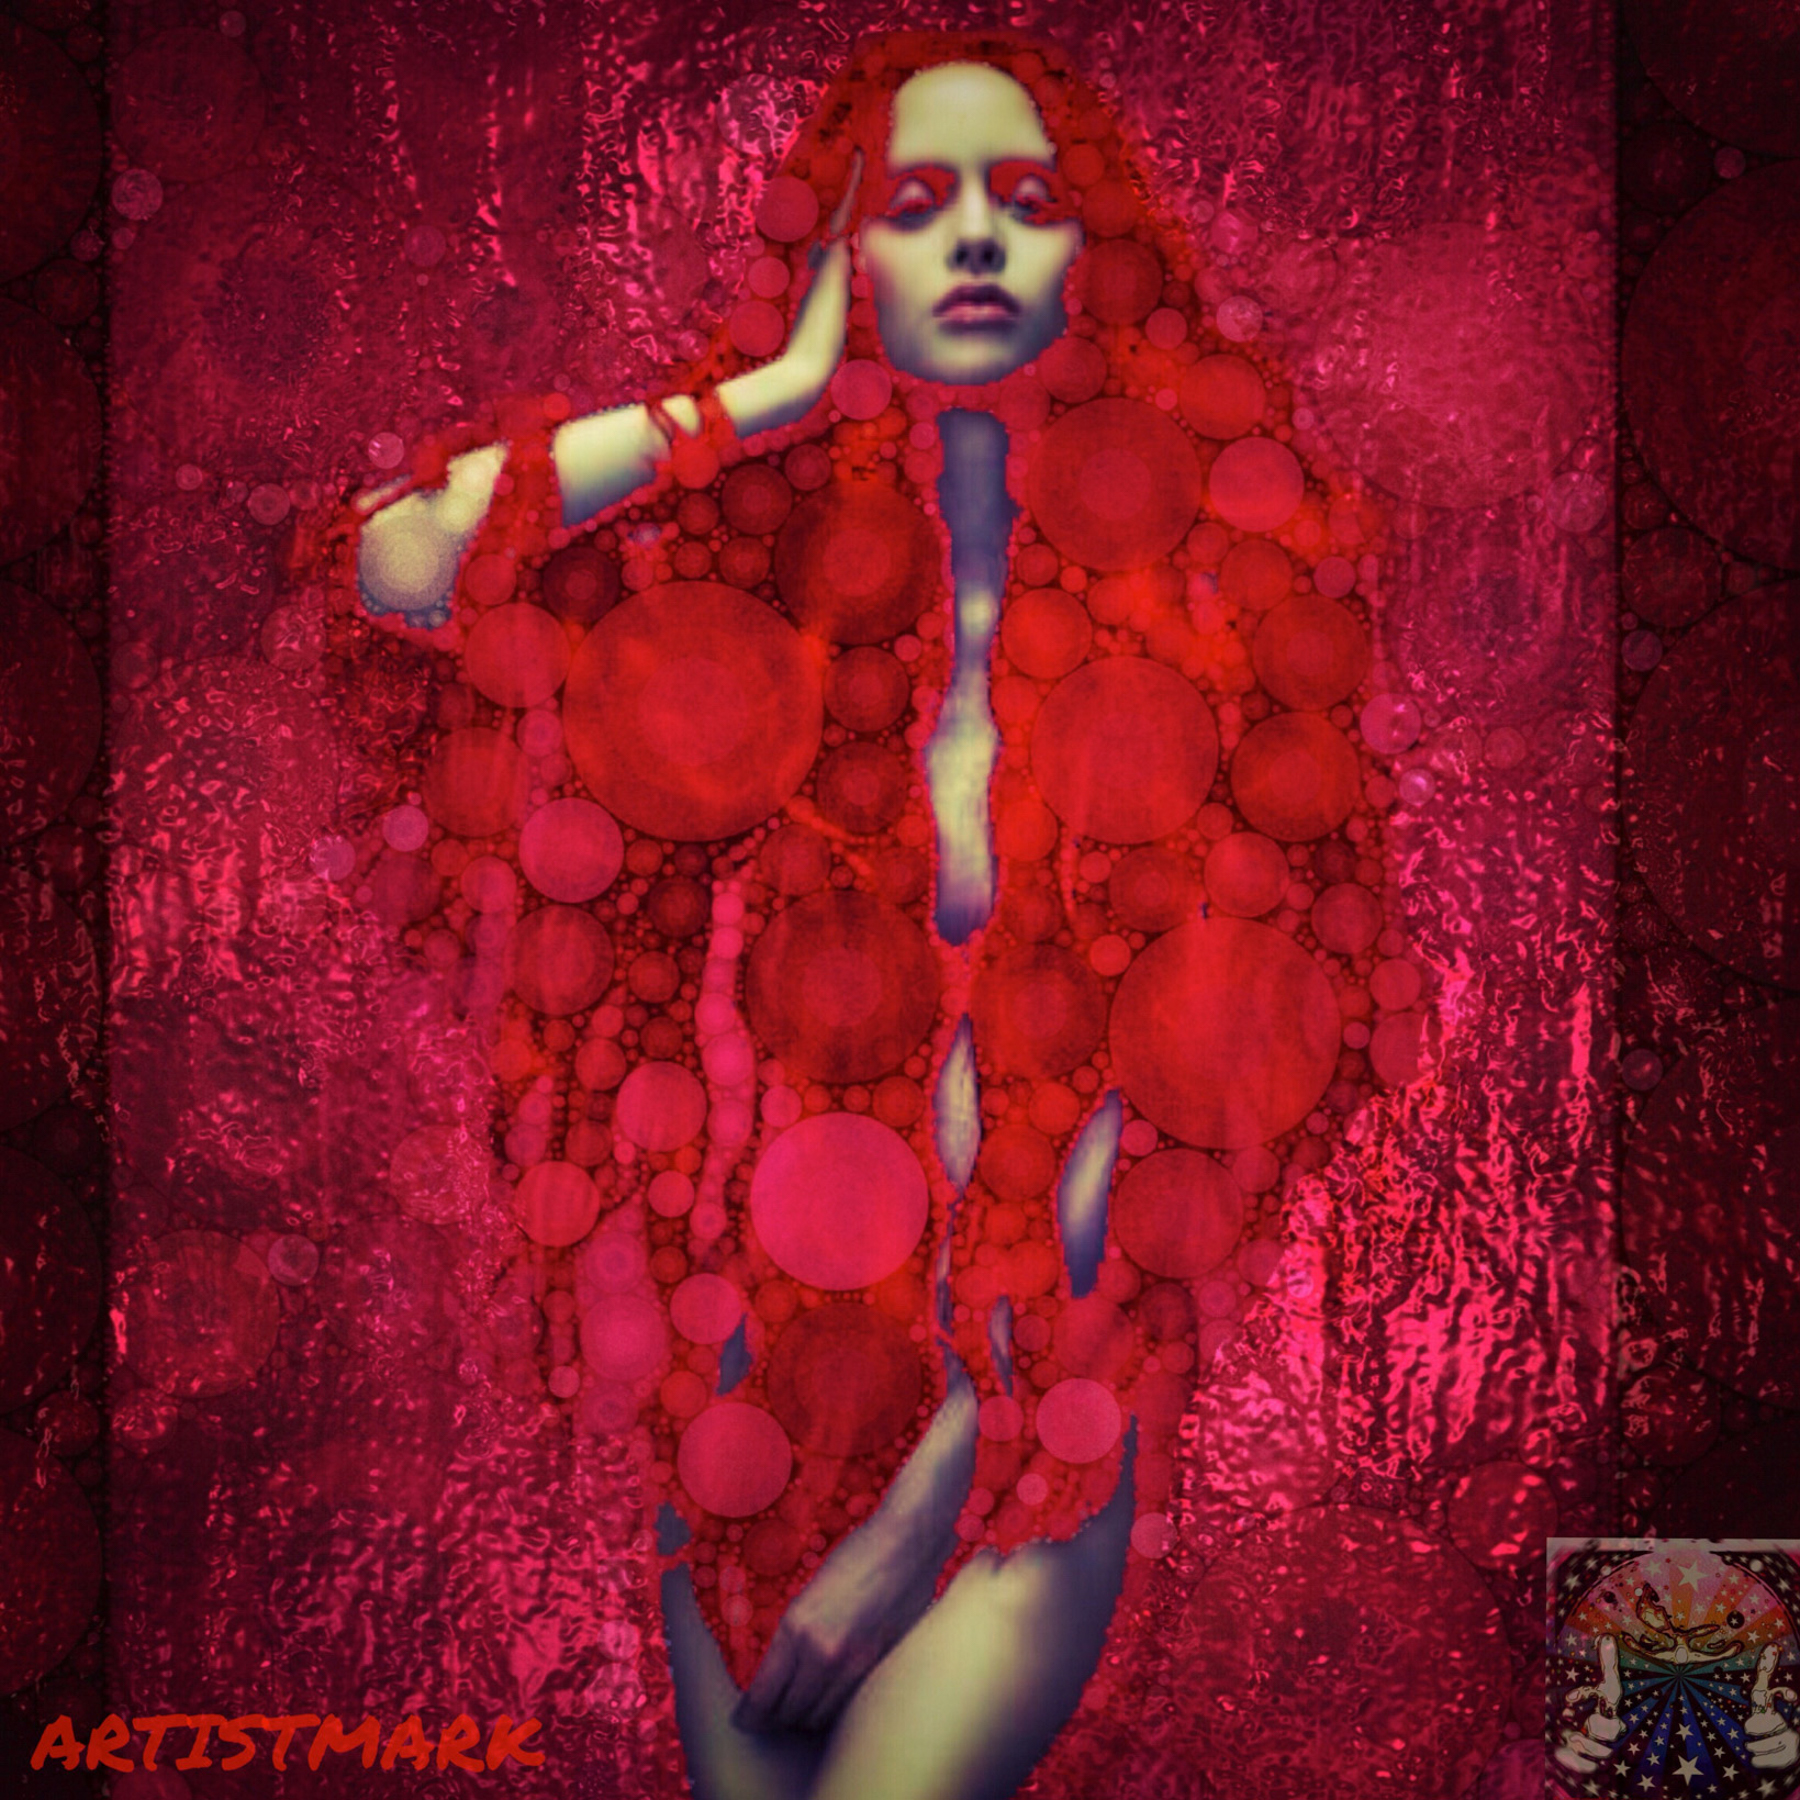 ARTISTMARK_Experimental-POP-ART_EP300.jpg